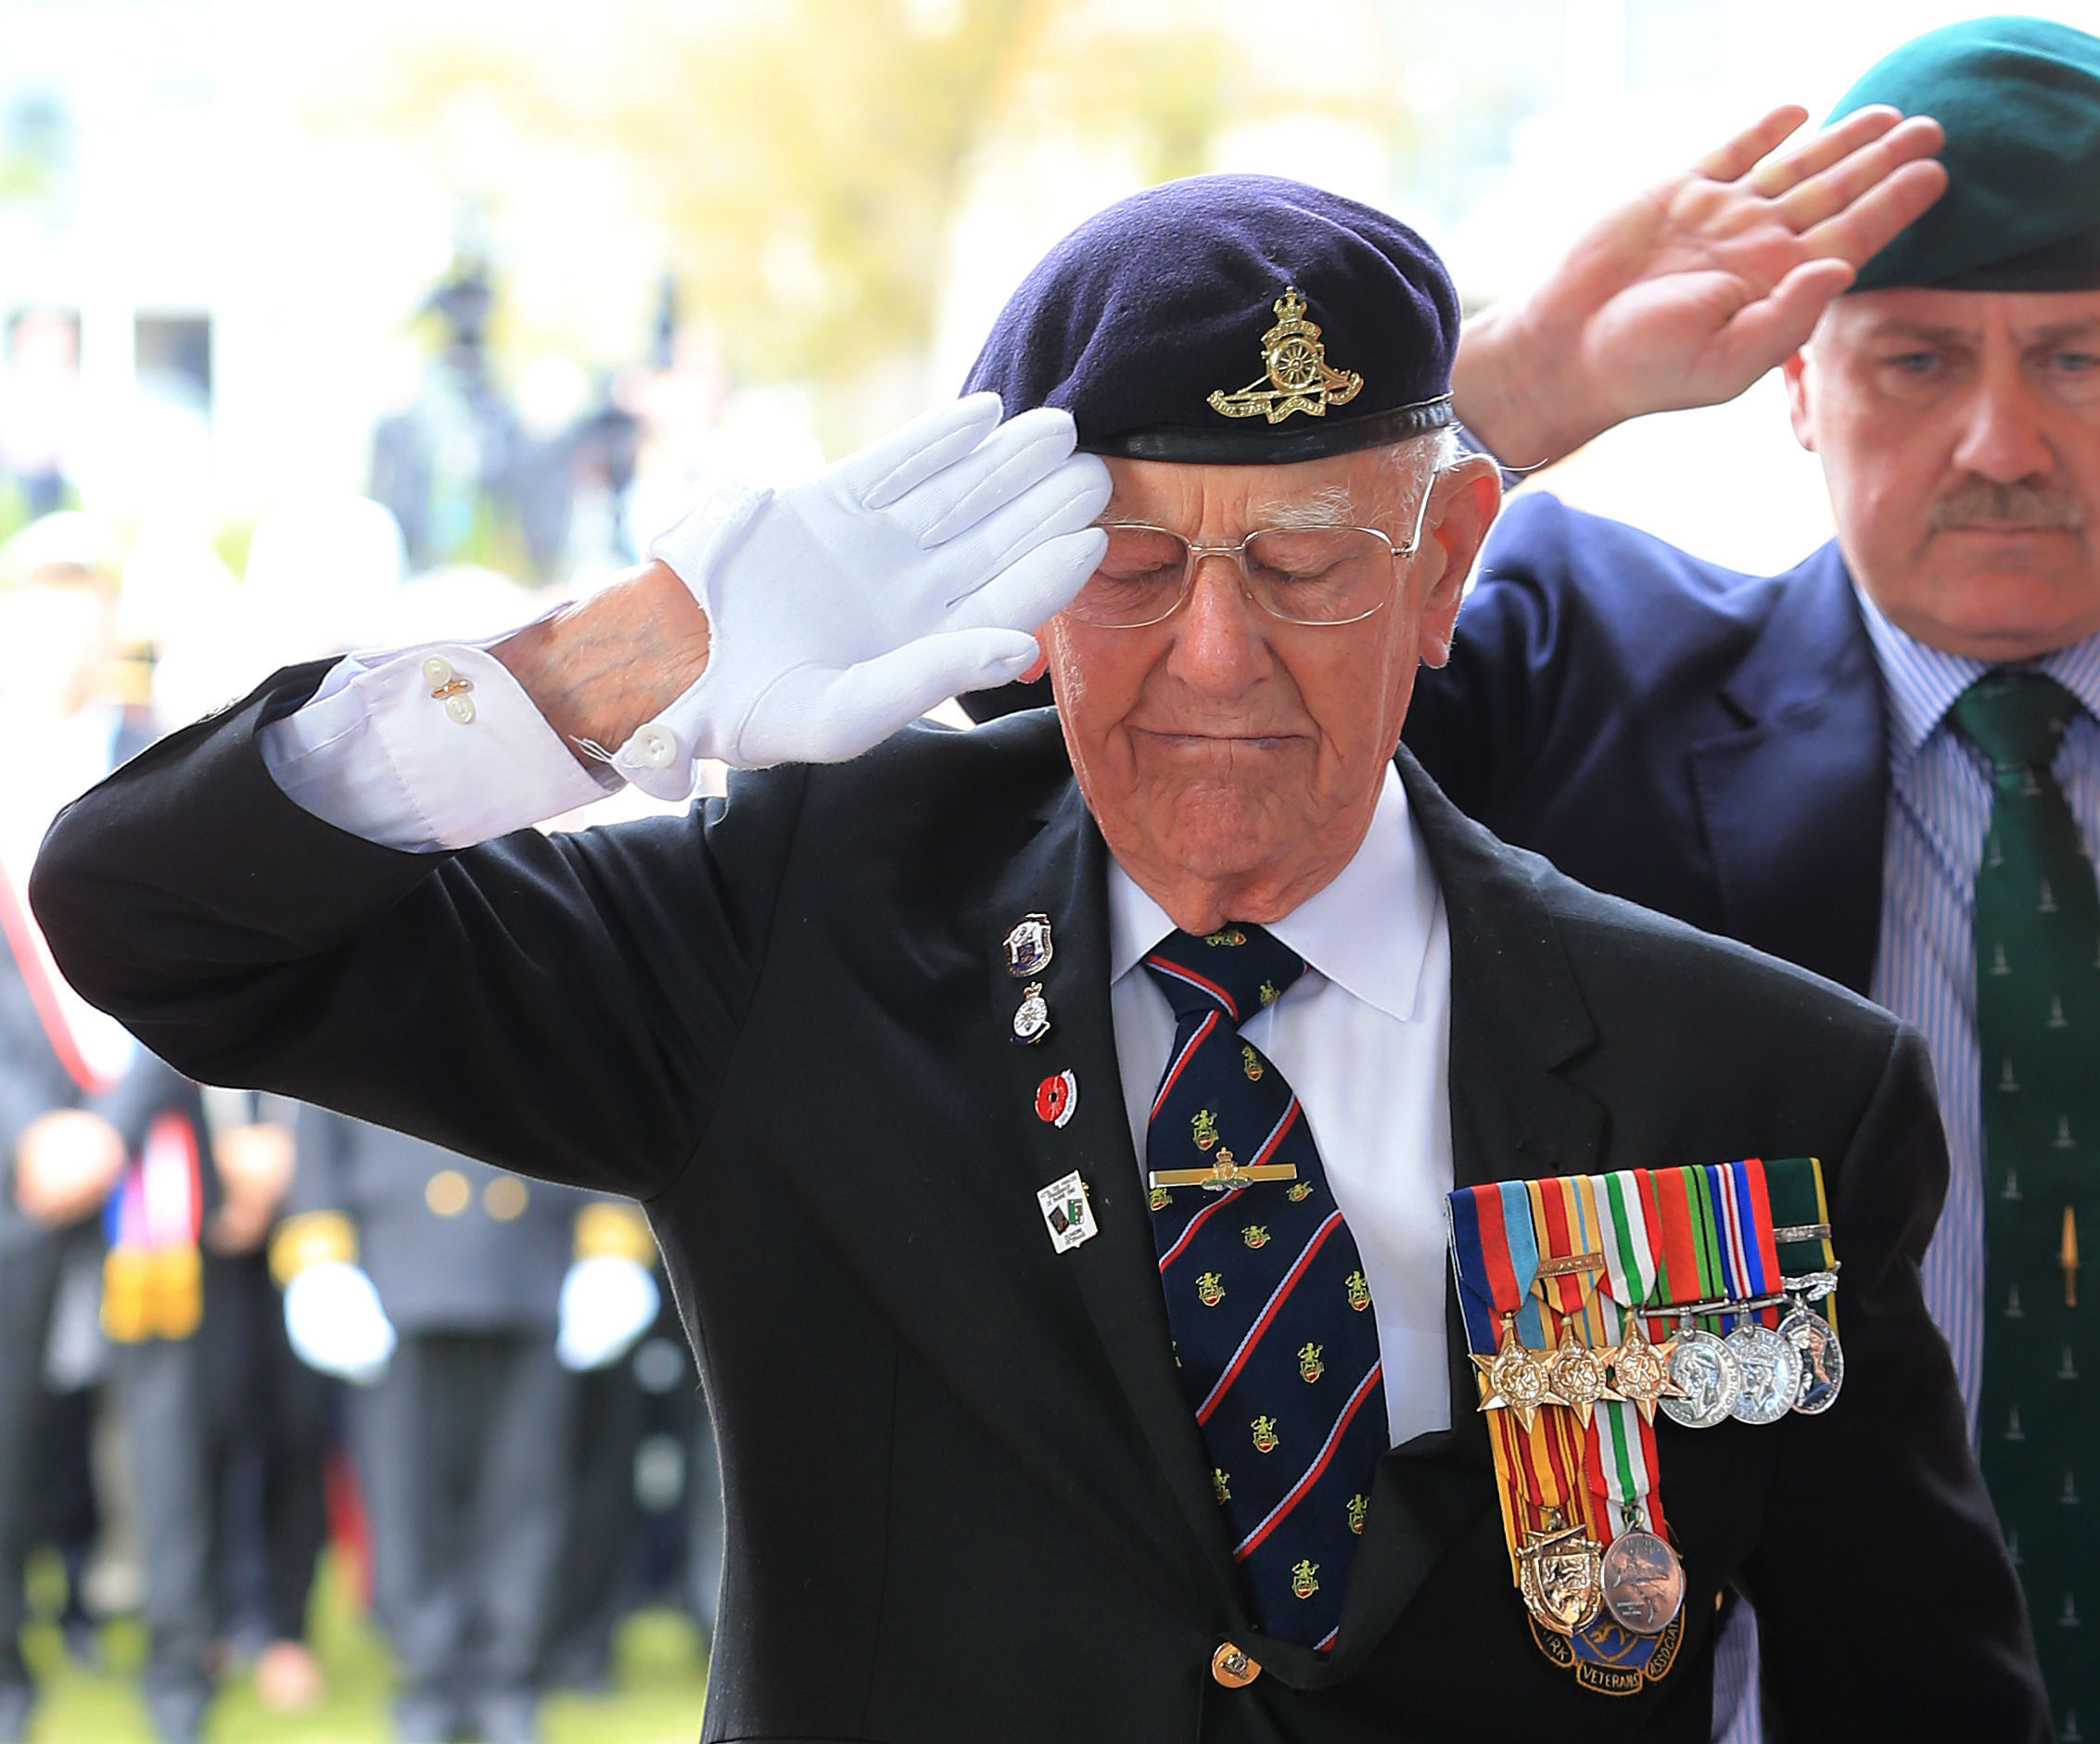 Dunkirk veteran Garth Wright (95) salutes after laying a wreath at the British Memorial in Dunkirk Military Cemetery, France, during a memorial service as part of the 75th anniversary commemorations of Operation Dynamo. (PA)